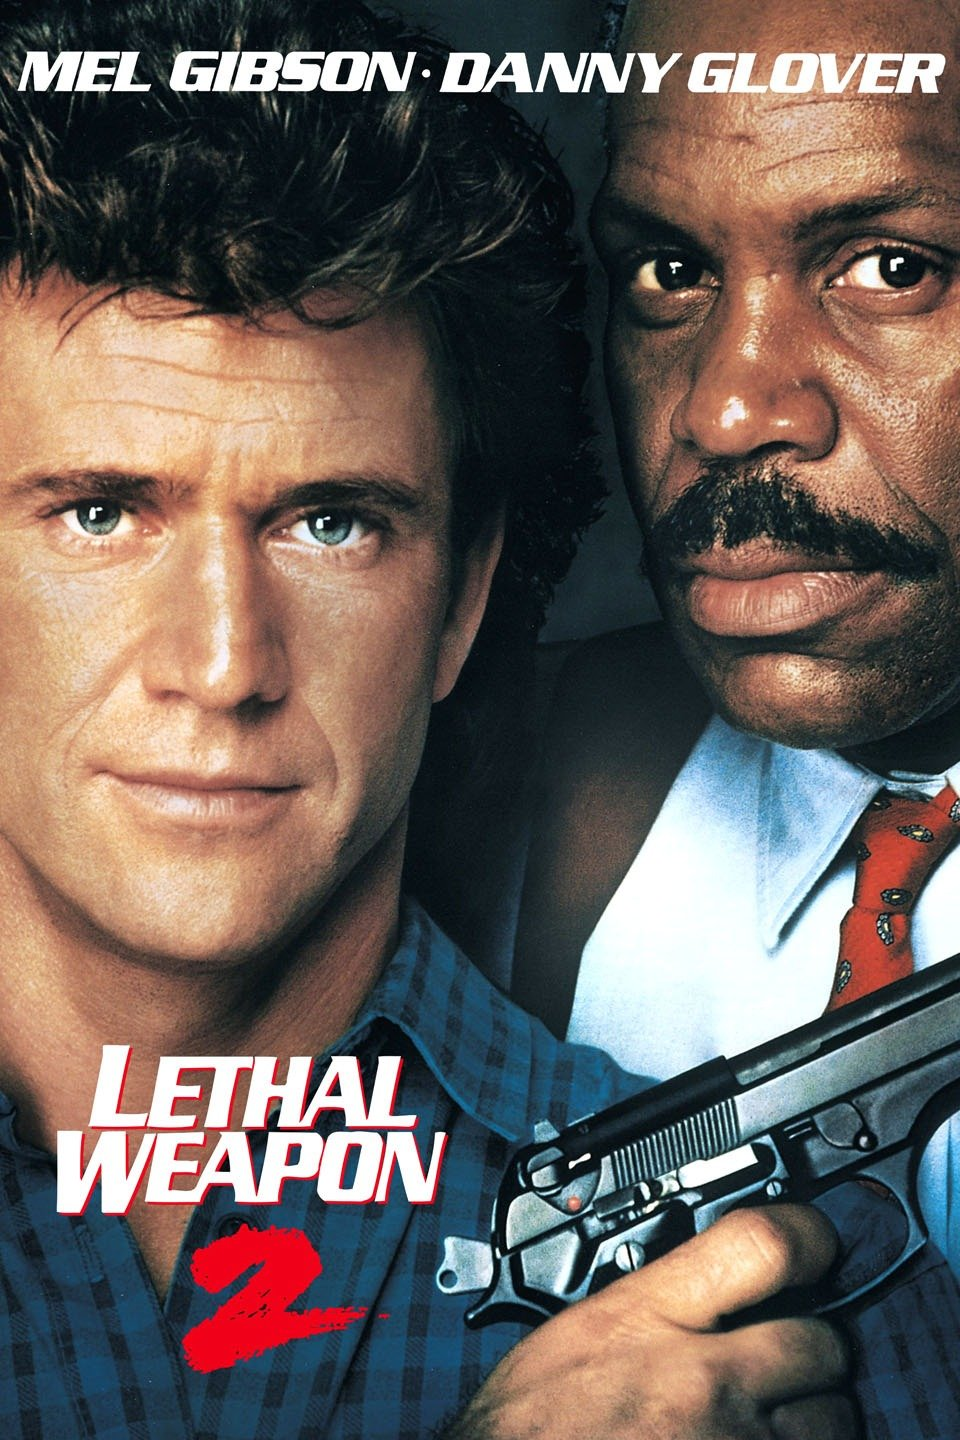 Lethal Weapon 2 1989 1080p BluRay REMUX VC-1 DTS-HD MA 5 1